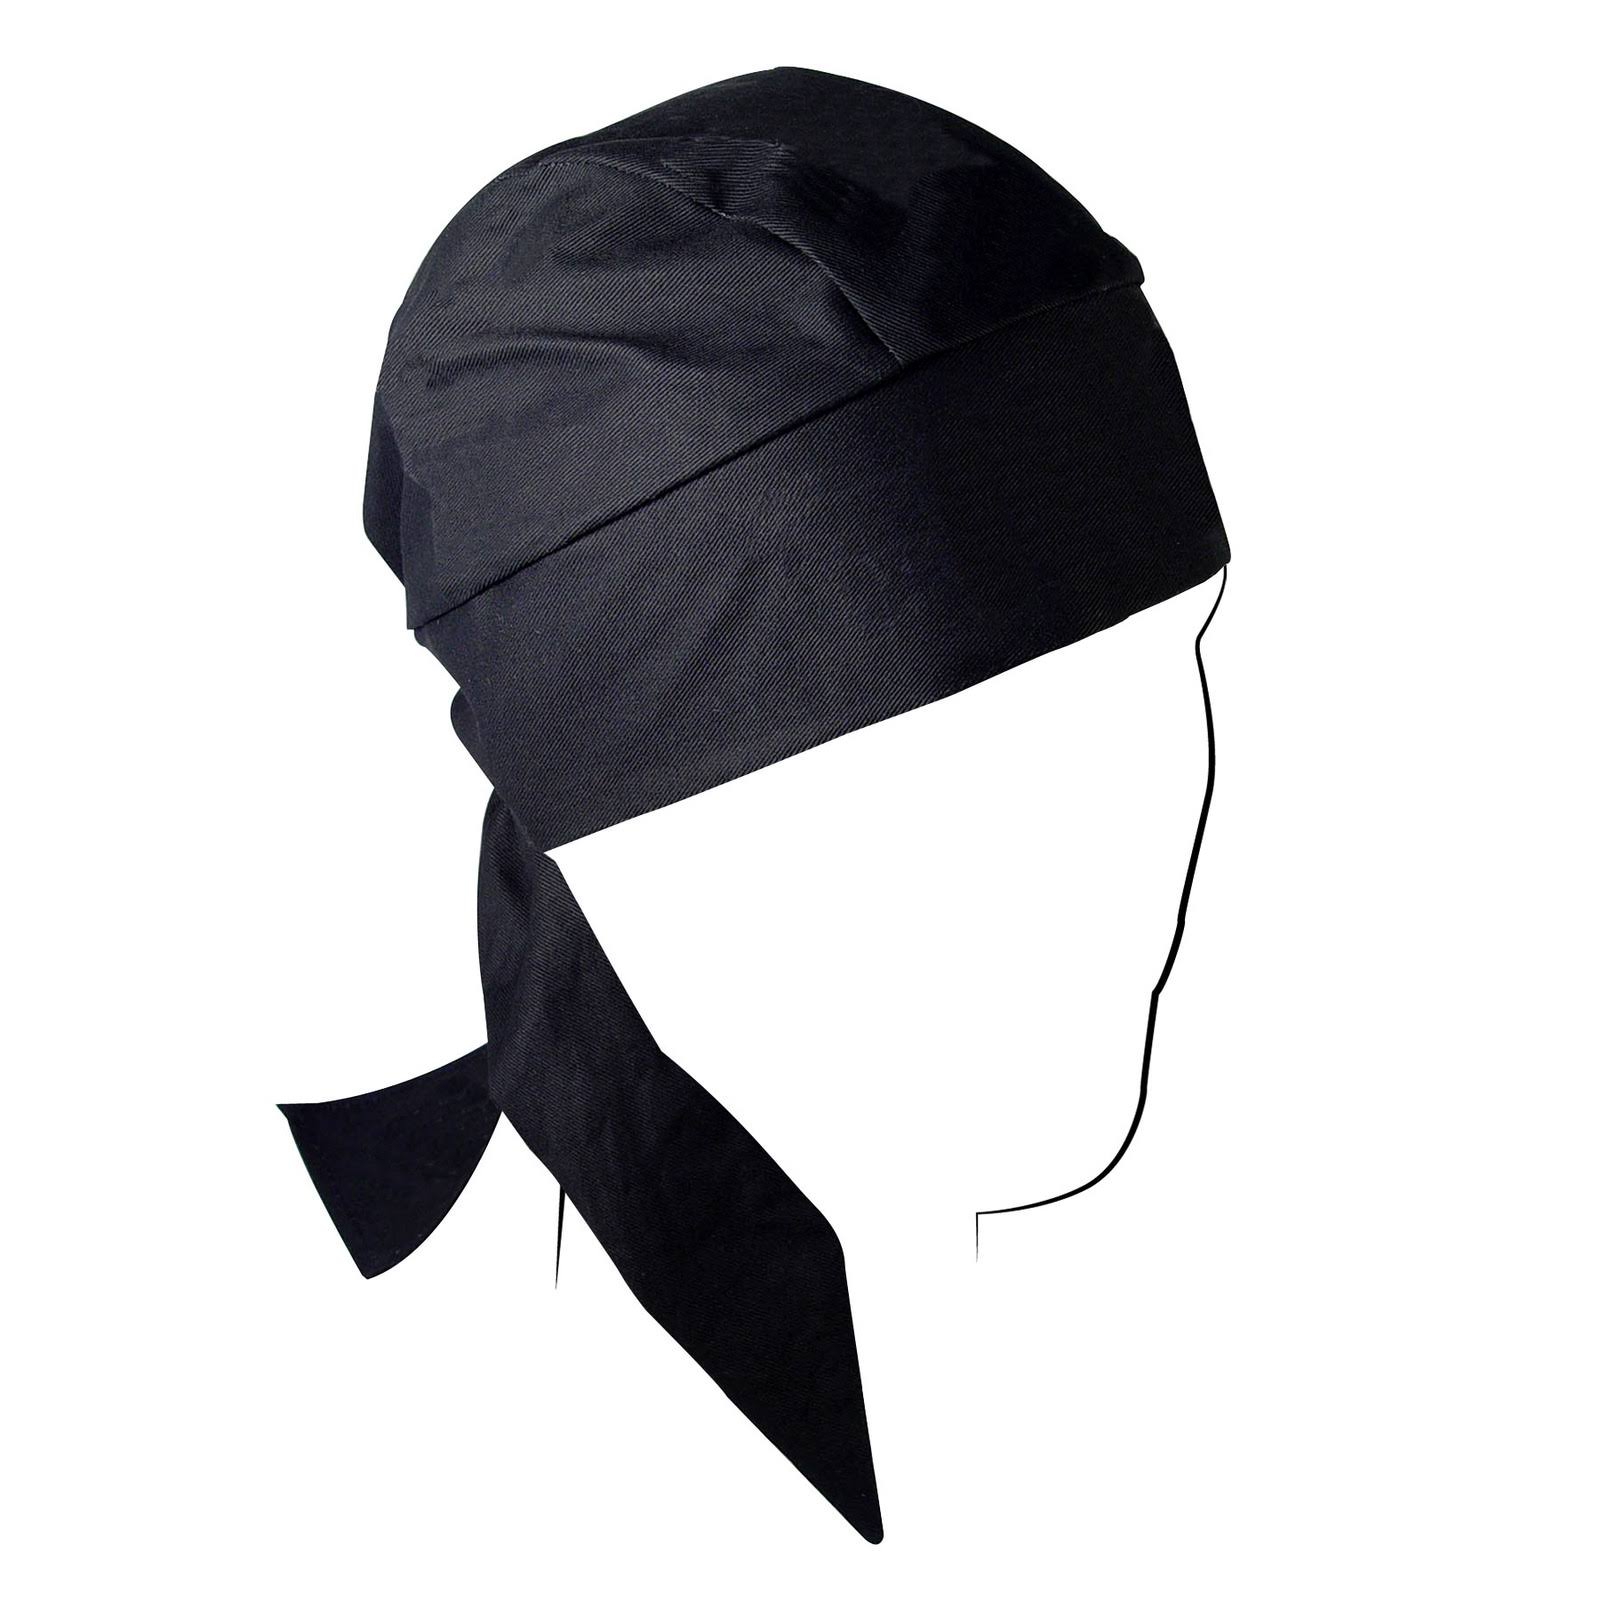 Balboa Headgear Flydanna Deluxe Headwrap - Black